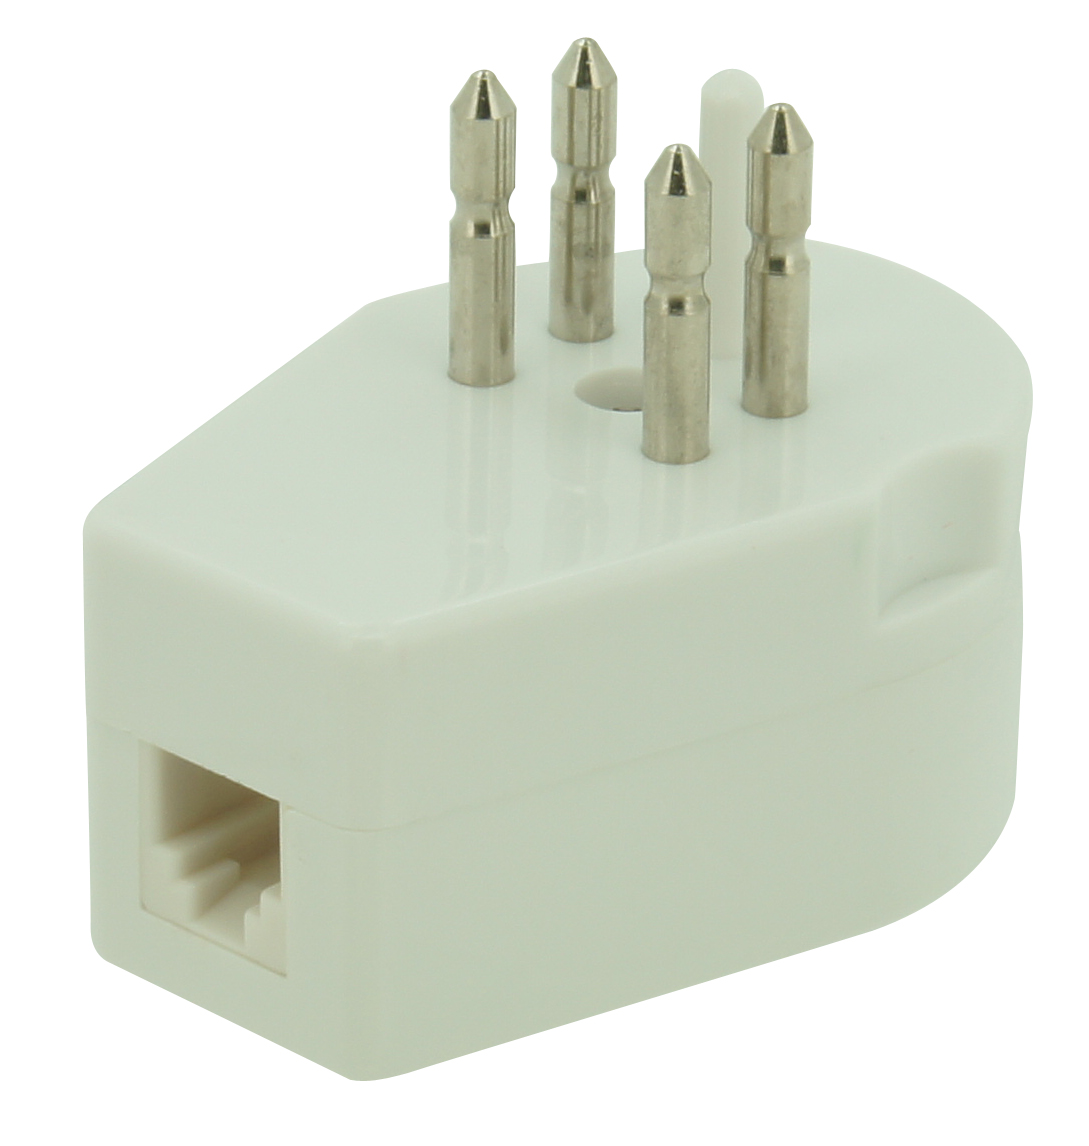 Transit and adaptor plug for telephone